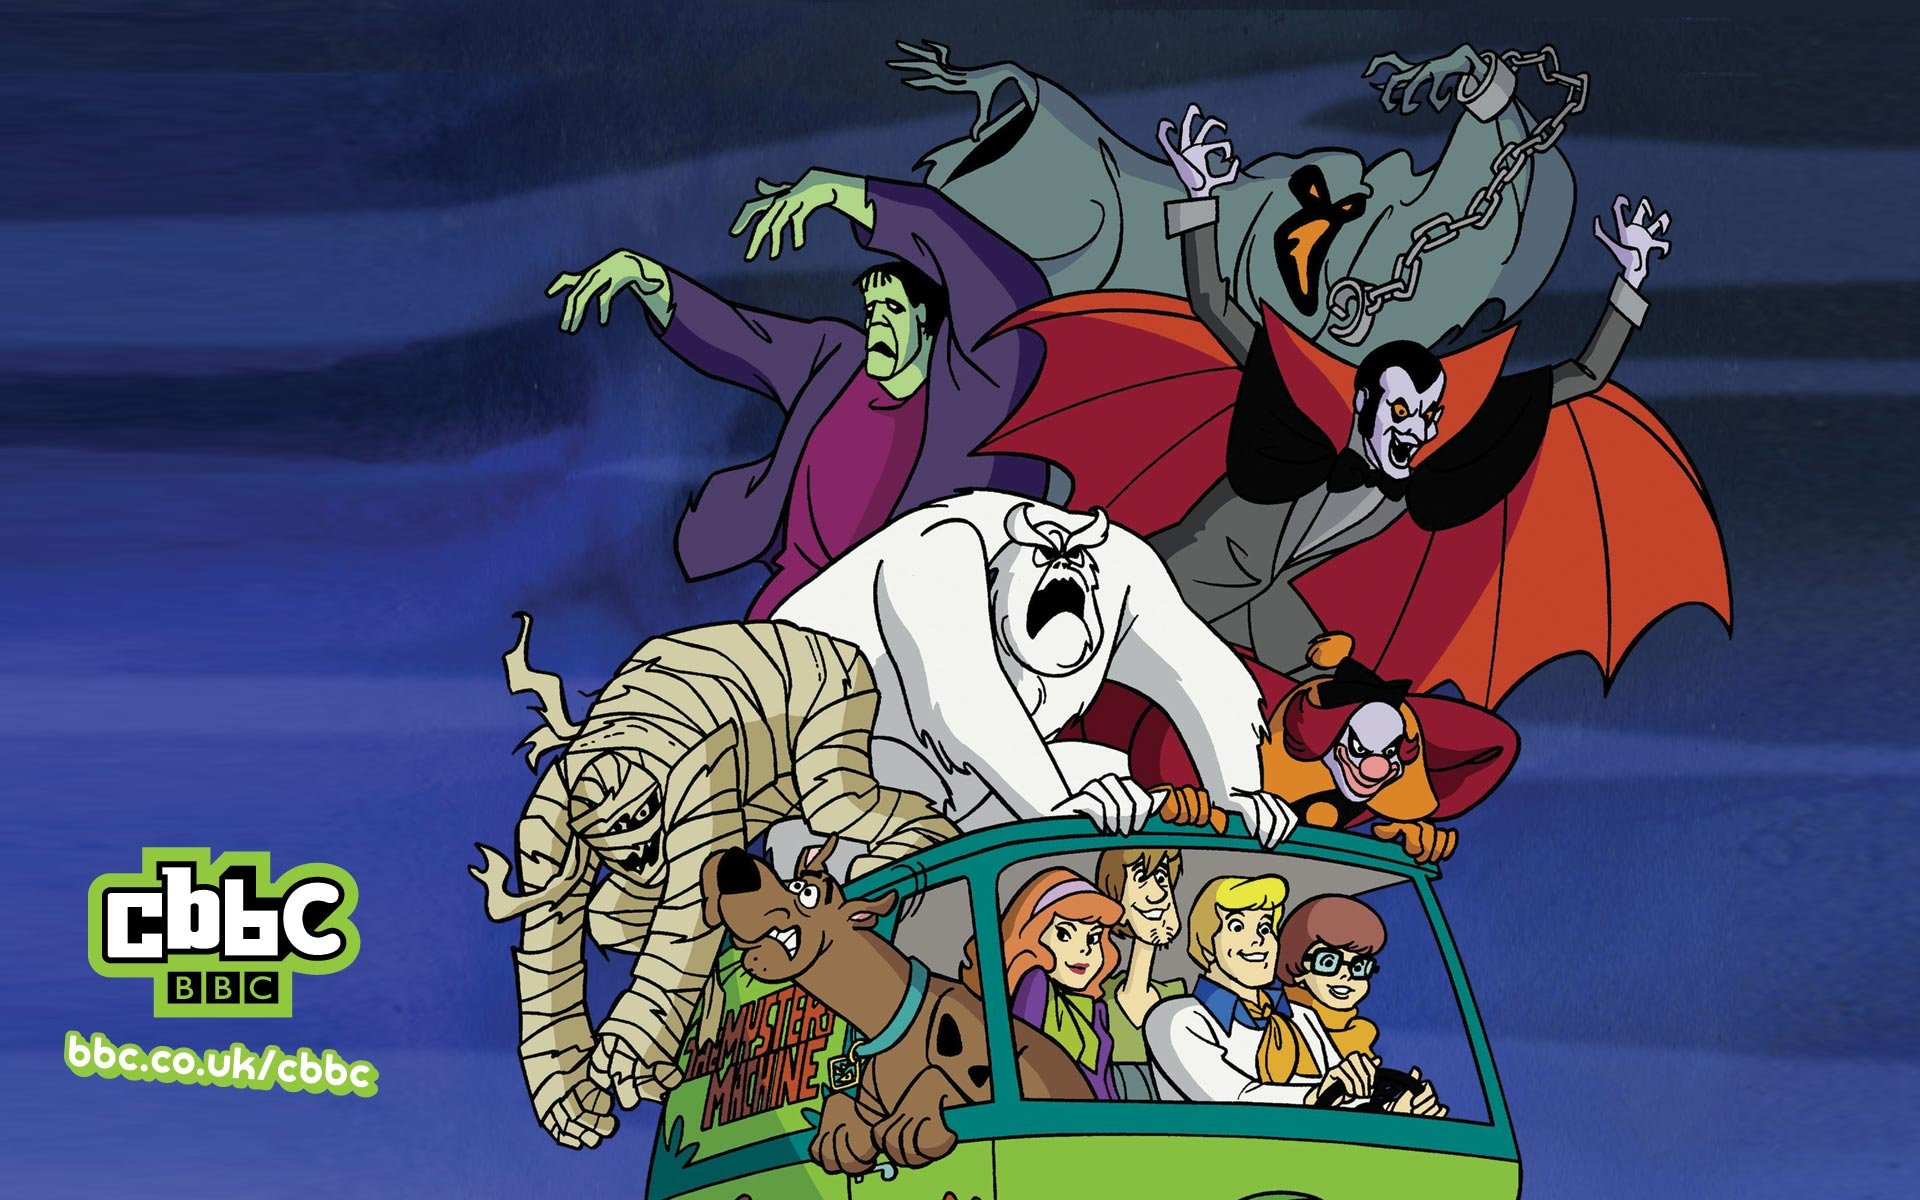 Whats New Scooby Doo Scooby and Gang Wallpaper 1920x1200